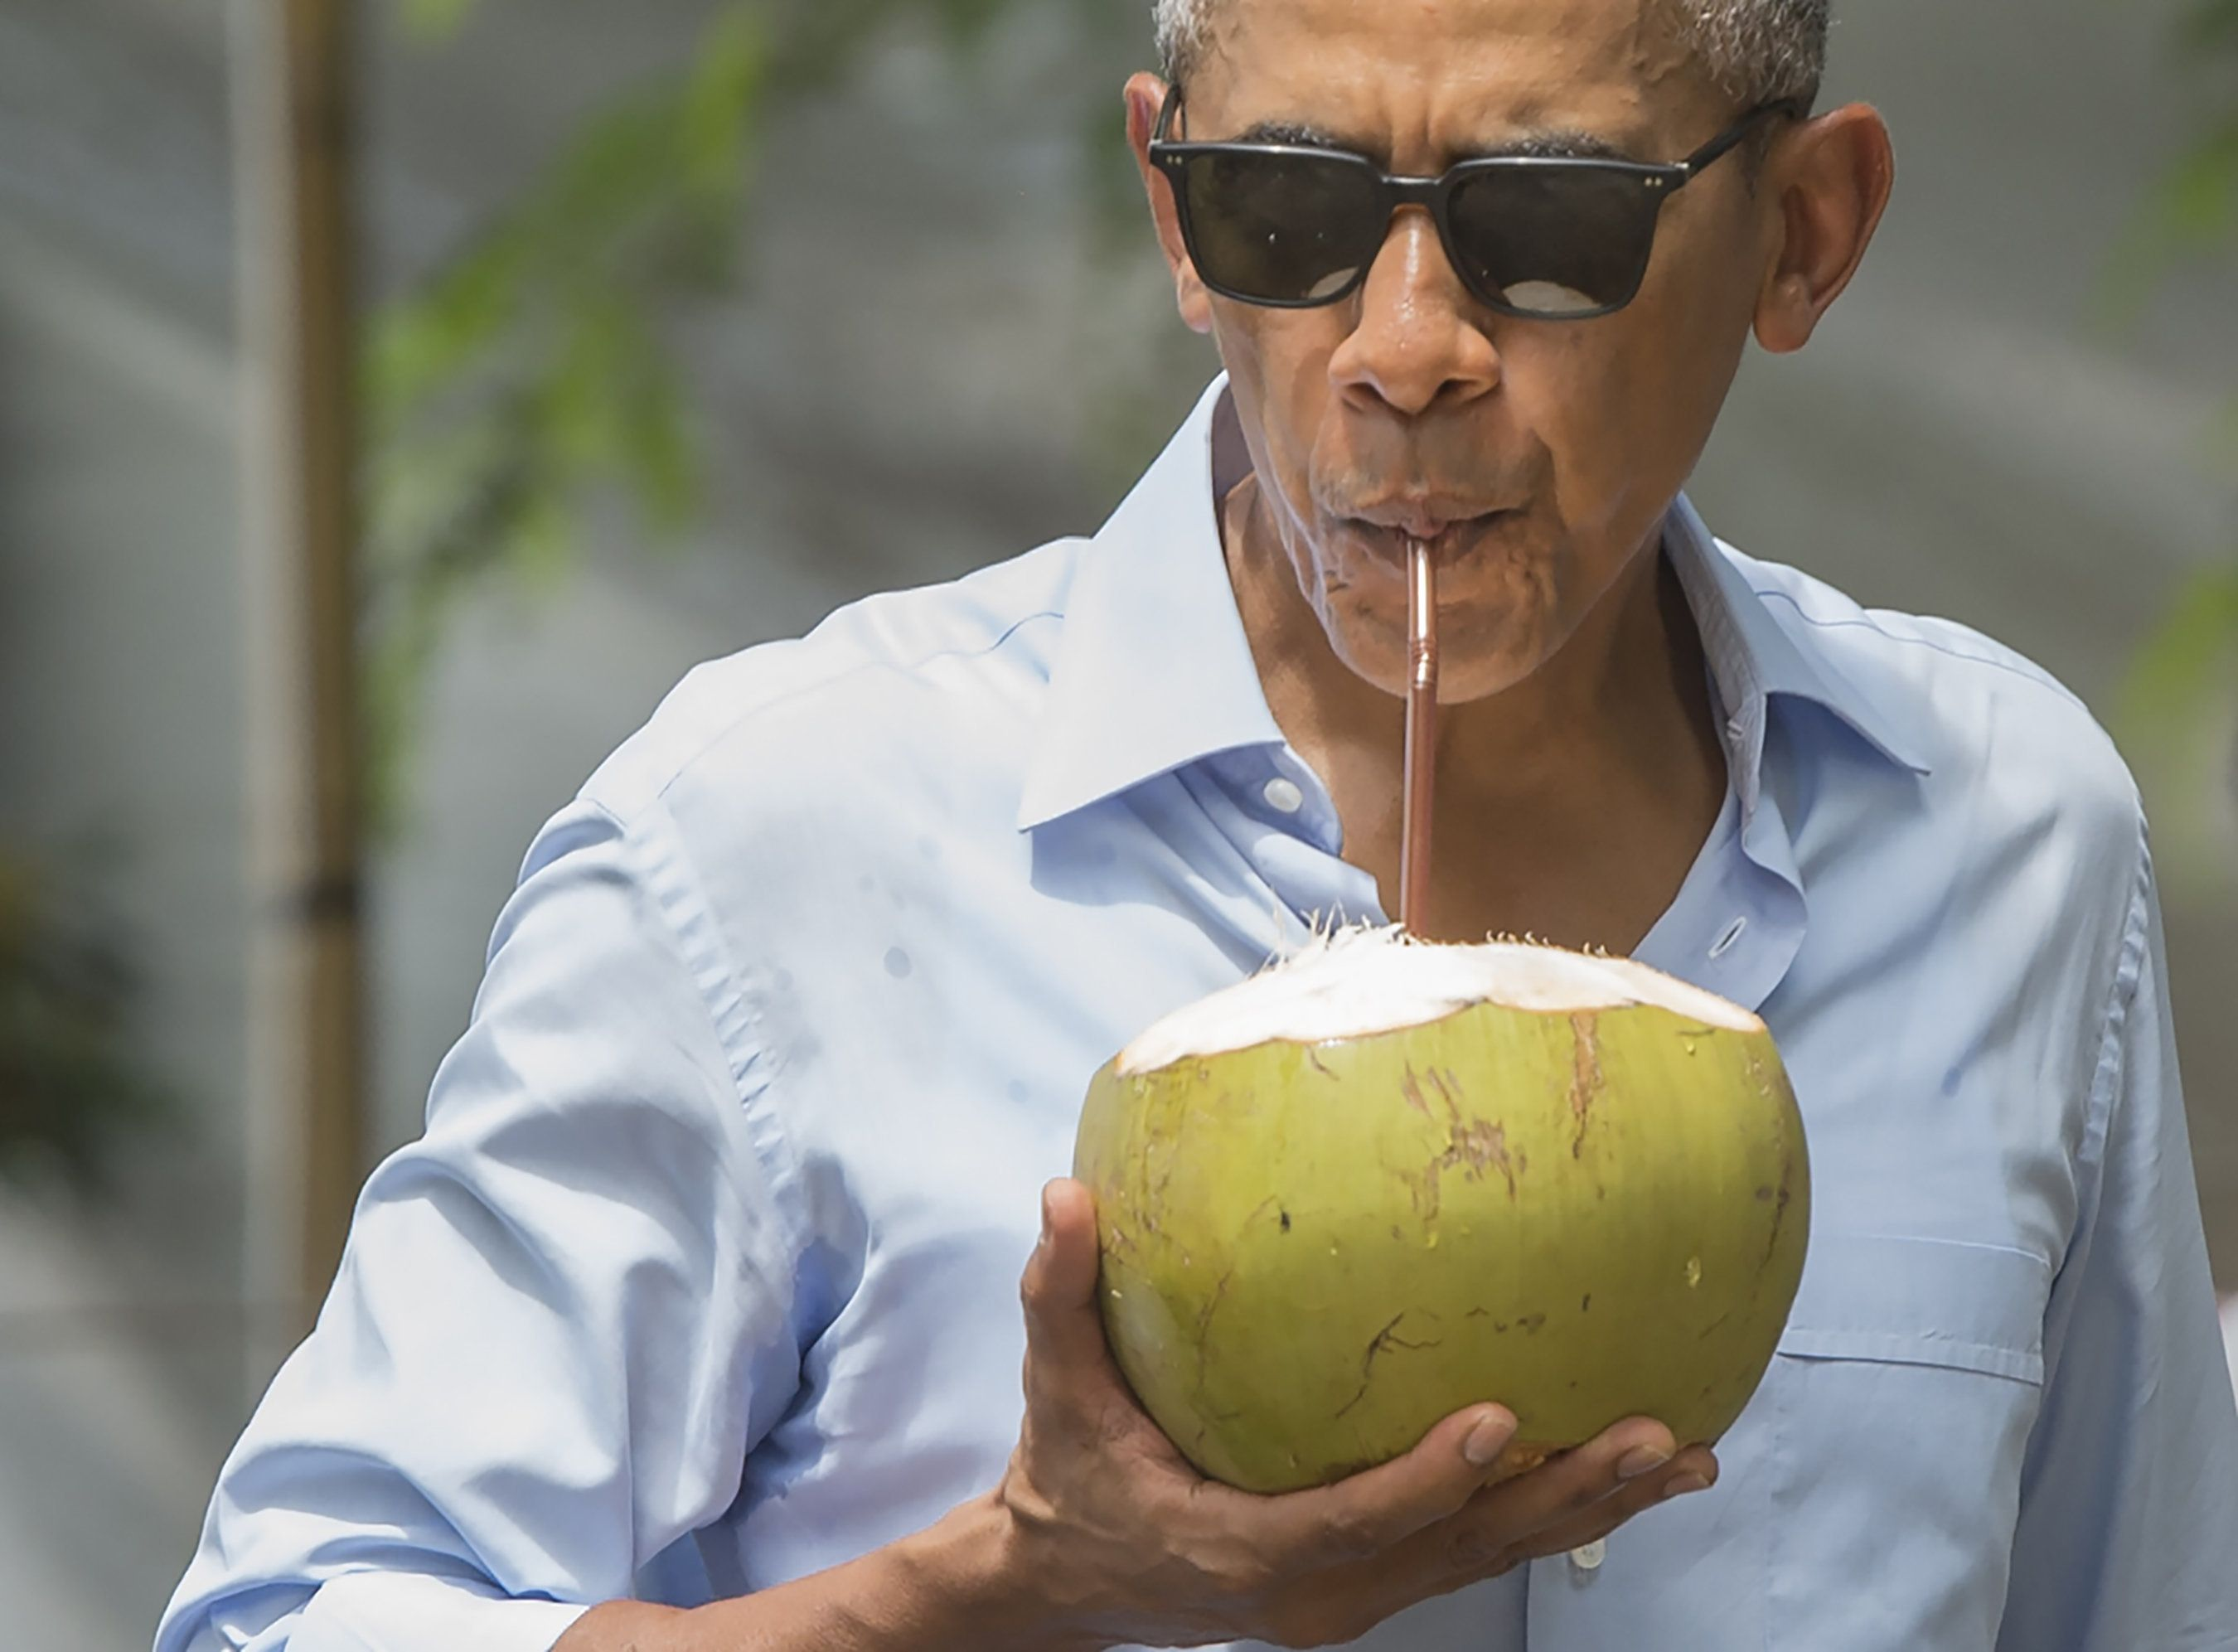 US President Barack Obama drinks from a coconut as he makes a surprise stop for a drink alonside the Mekong River in Luang Prabang on September 7, 2016. Obama became the first US president to visit Laos in office, touching down in Vientiane late on September 5 for a summit of East and South East Asian leaders. / AFP / SAUL LOEB        (Photo credit should read SAUL LOEB/AFP/Getty Images)